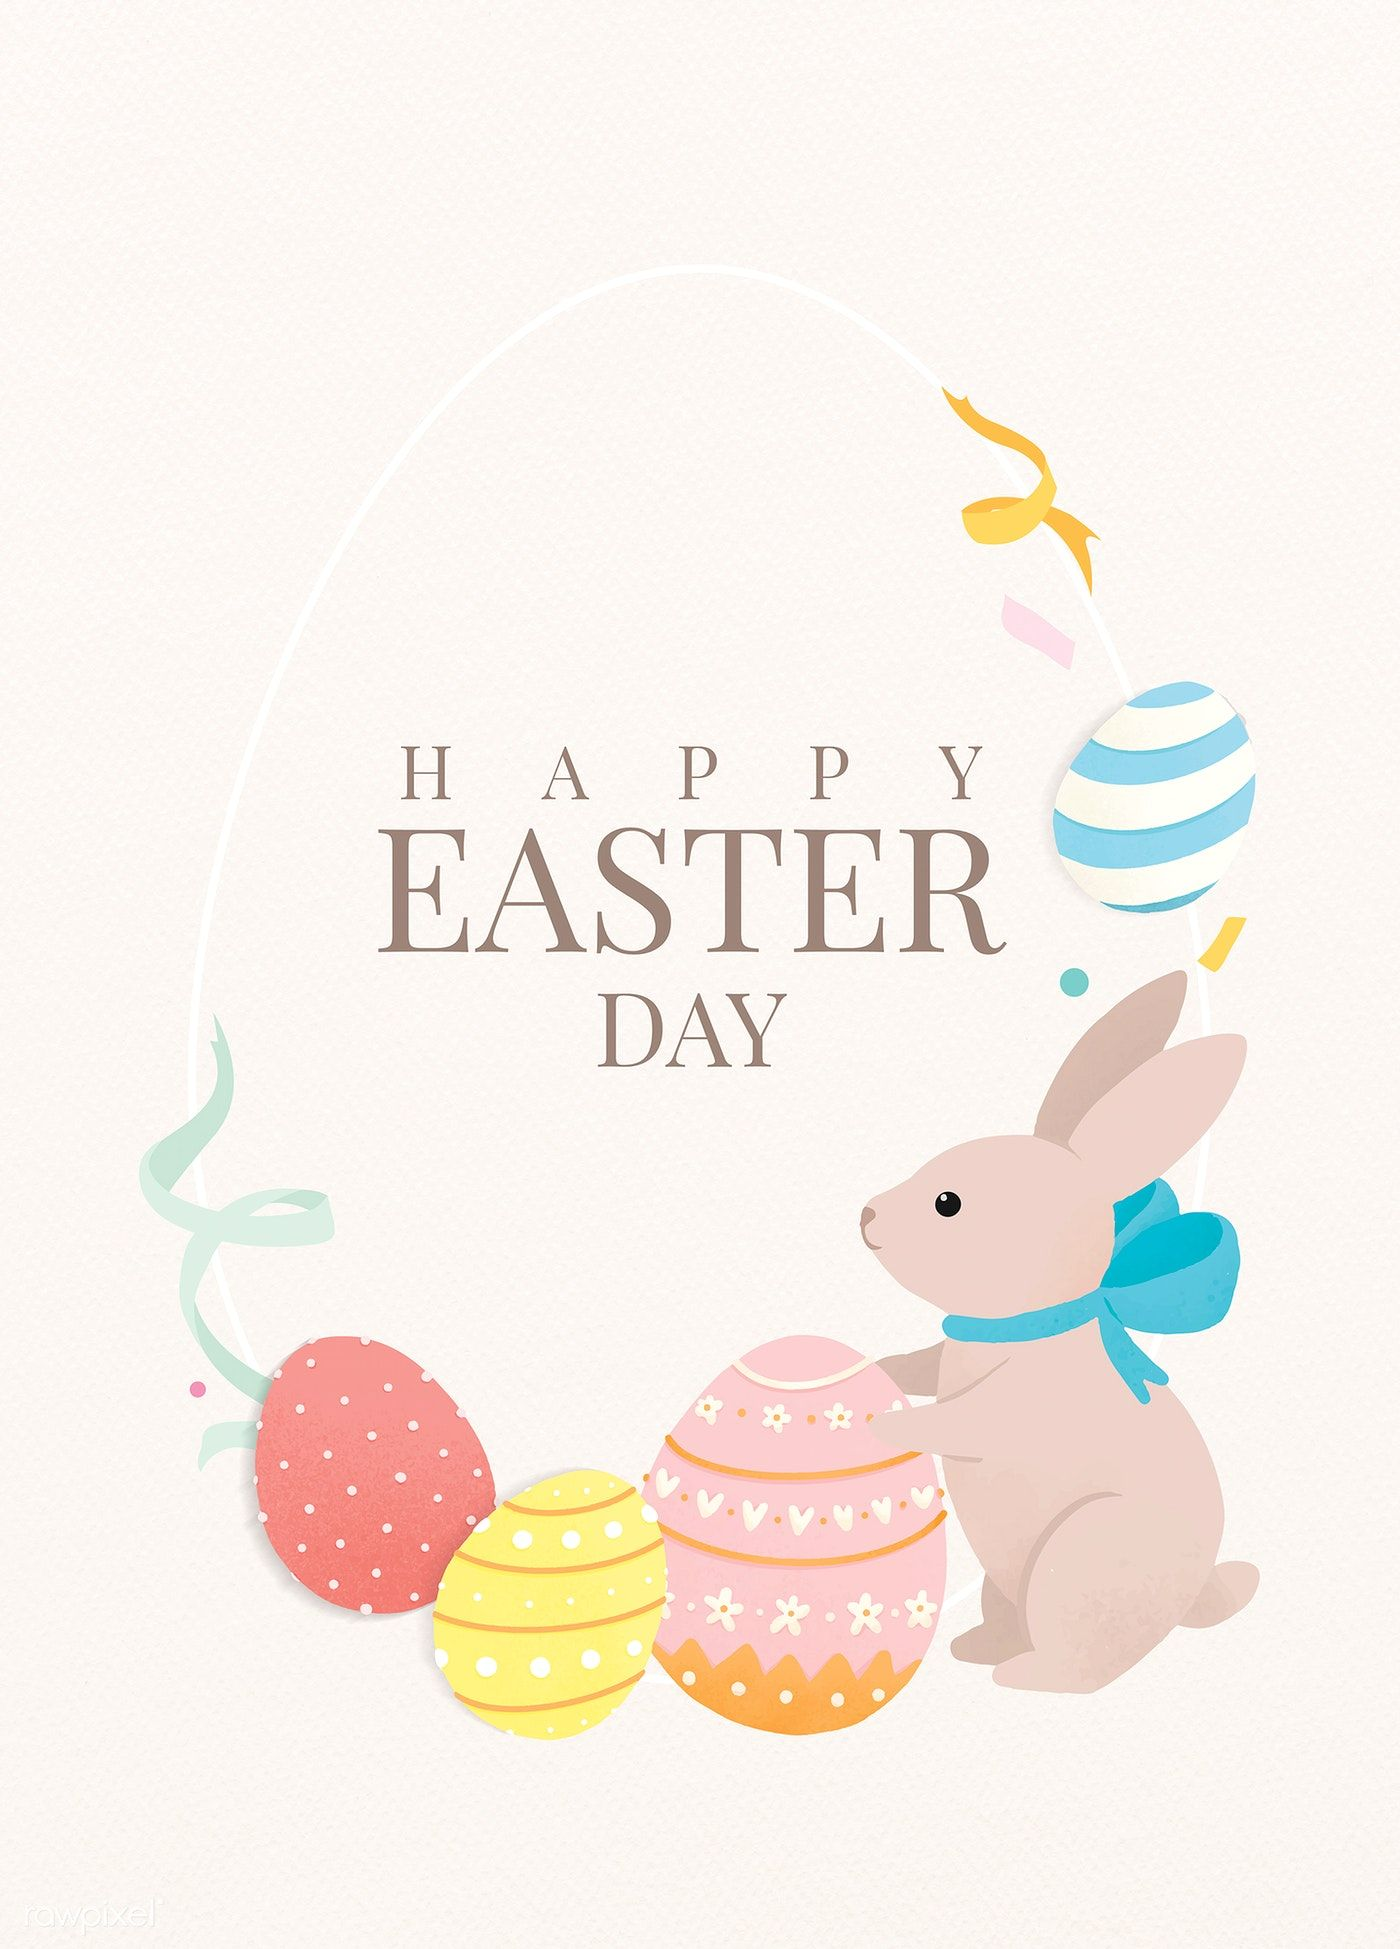 Download Premium Vector Of Colorful Happy Easter Day Template Design Happy Easter Day Easter Illustration Happy Easter